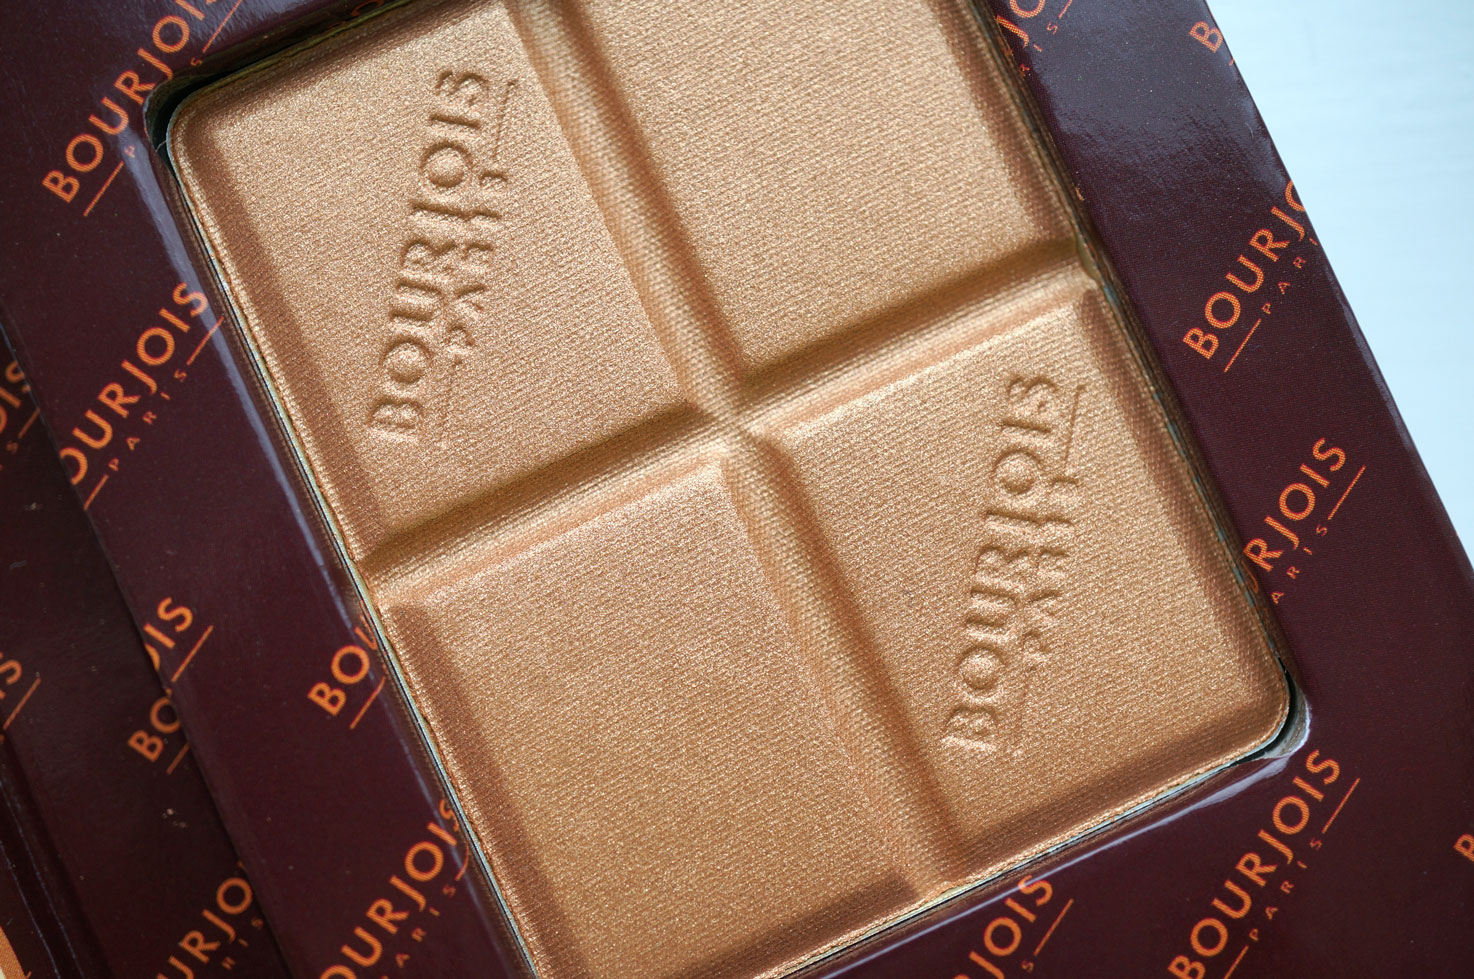 Bourjois-Gold-Bronzing-Powder-review